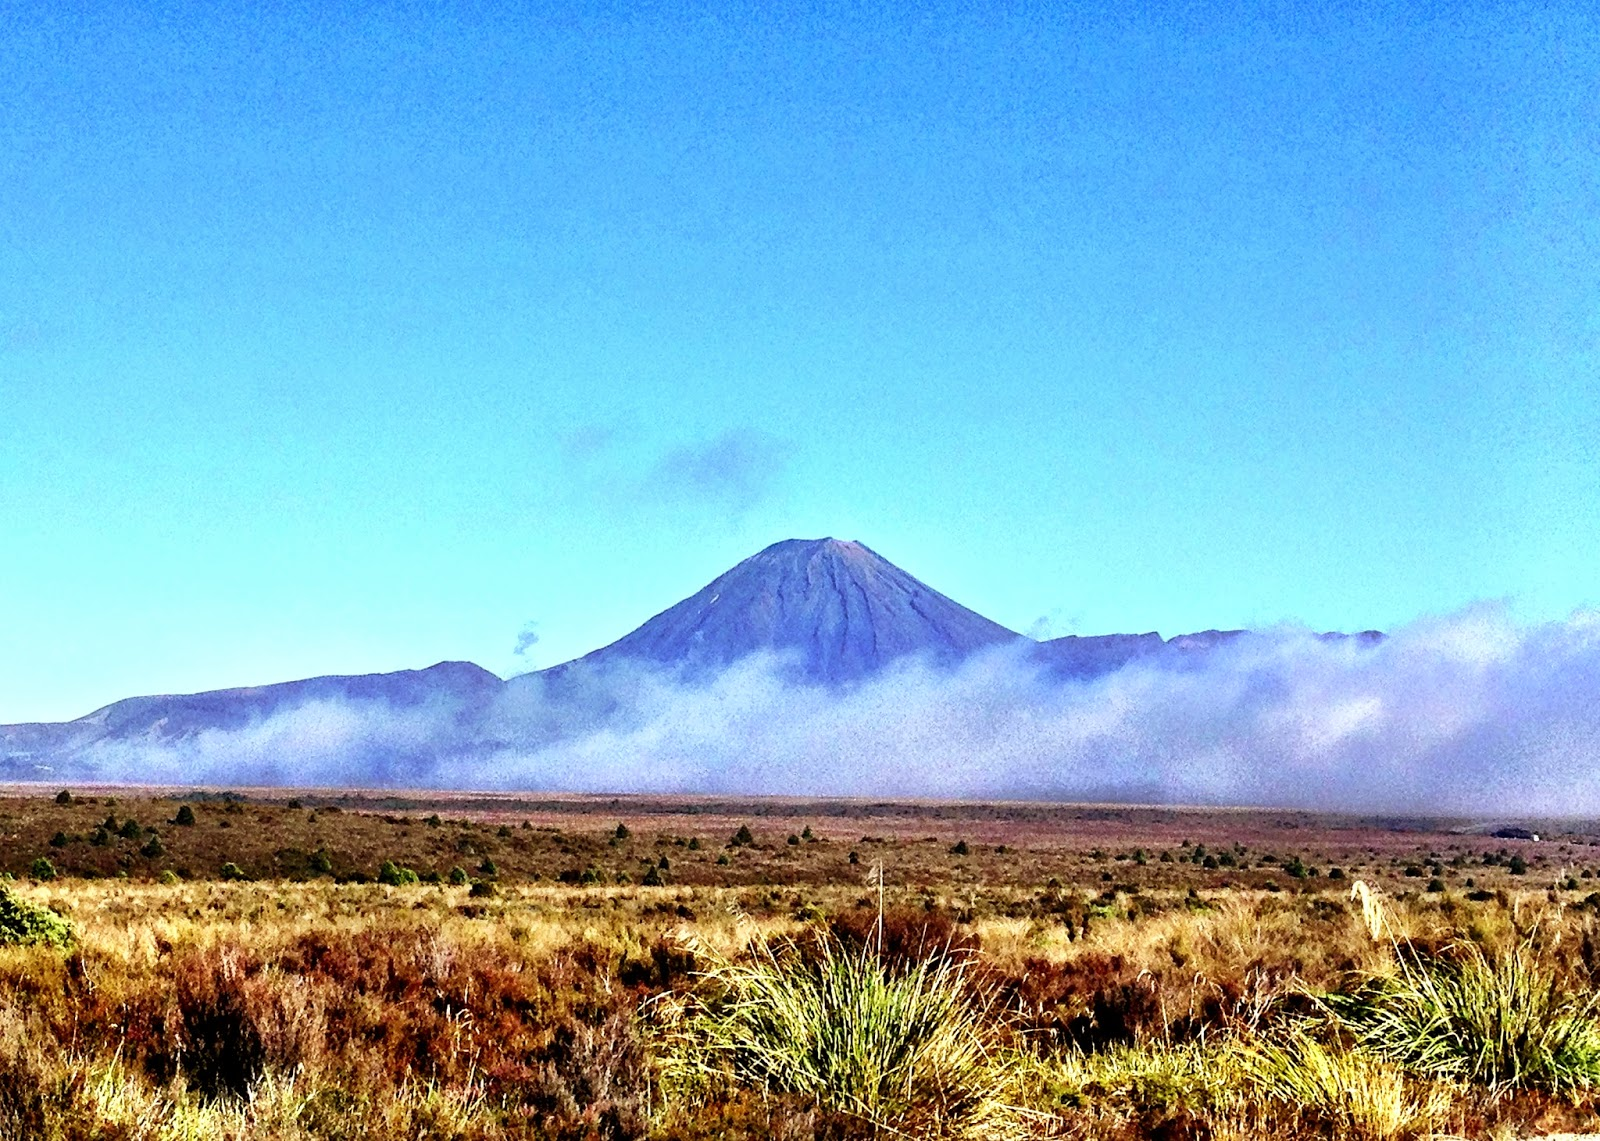 Mount Ngauruhoe from a distance - North Island, New Zealand